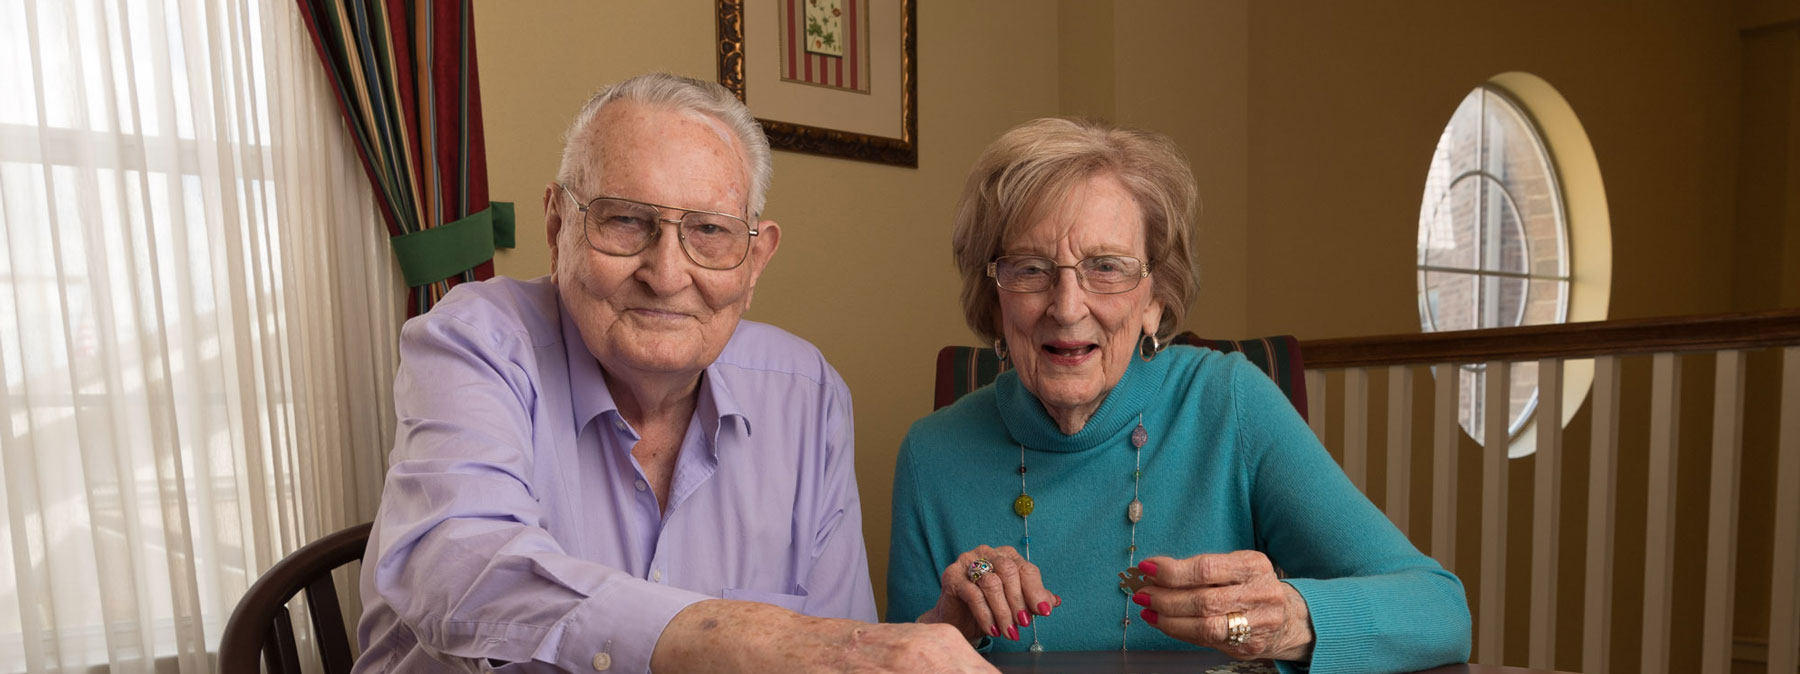 Older Couple at Mt. Creek Retirement Independent Living facility image